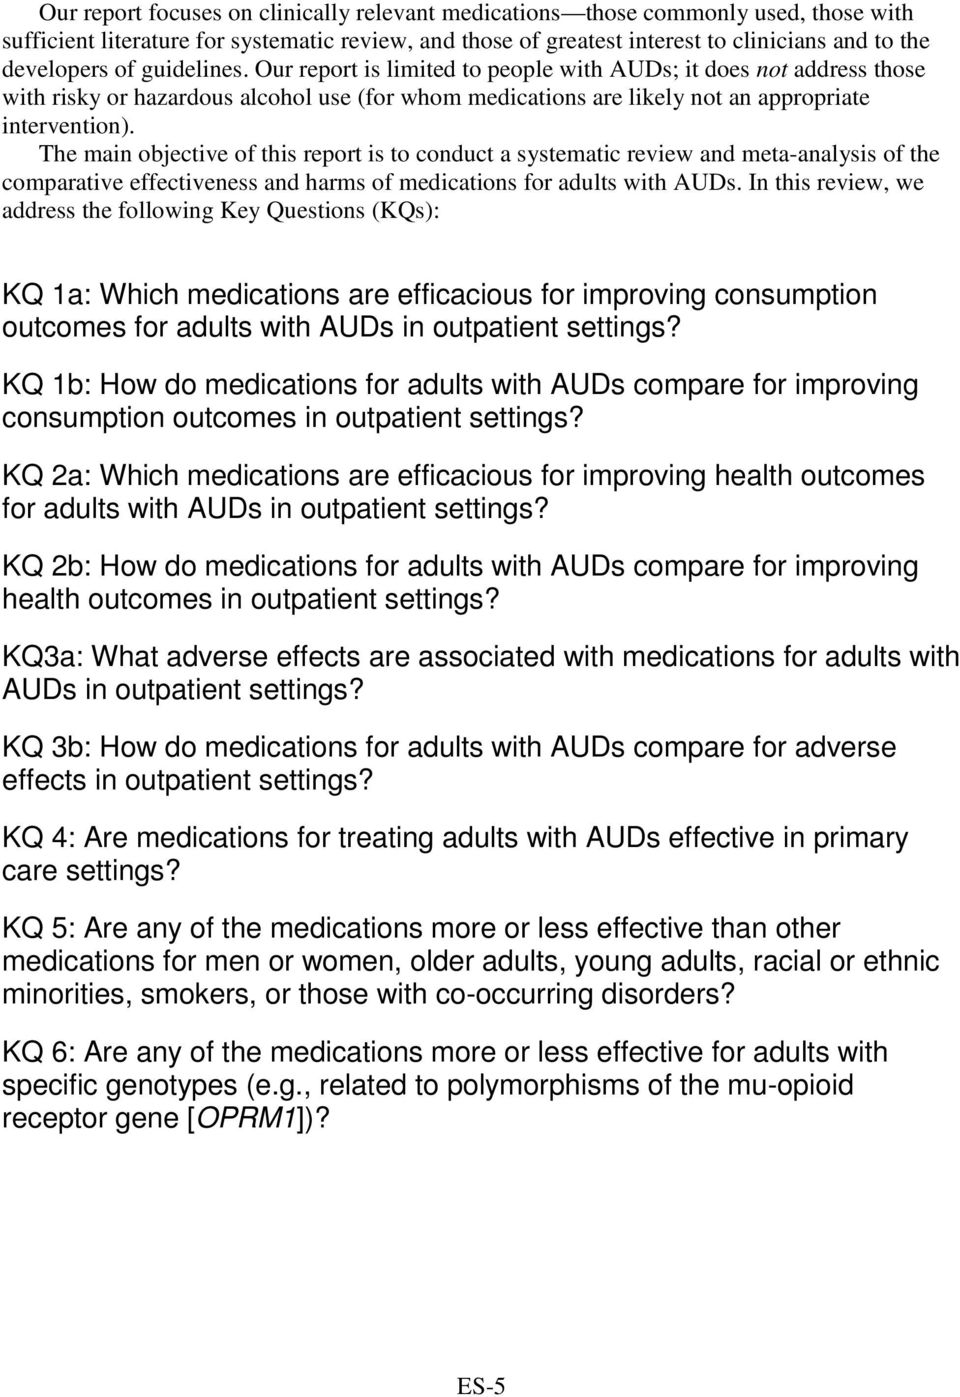 The main objective of this report is to conduct a systematic review and meta-analysis of the comparative effectiveness and harms of medications for adults with AUDs.